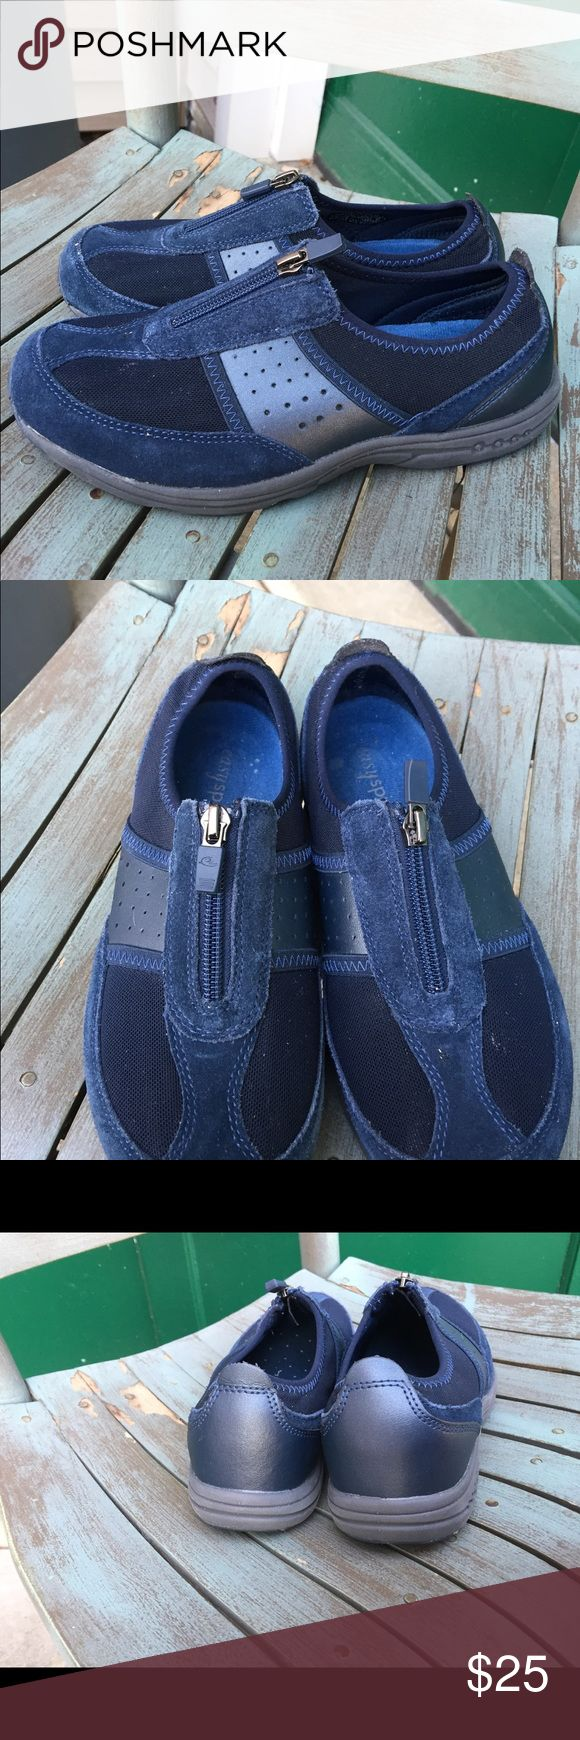 Women's Easy Spirit Navy Blue Leather Sneakers 7M Women's Easy Spirit Navy Blue Leather Sneakers 7M. Excellent Condition Easy Spirit Shoes Sneakers